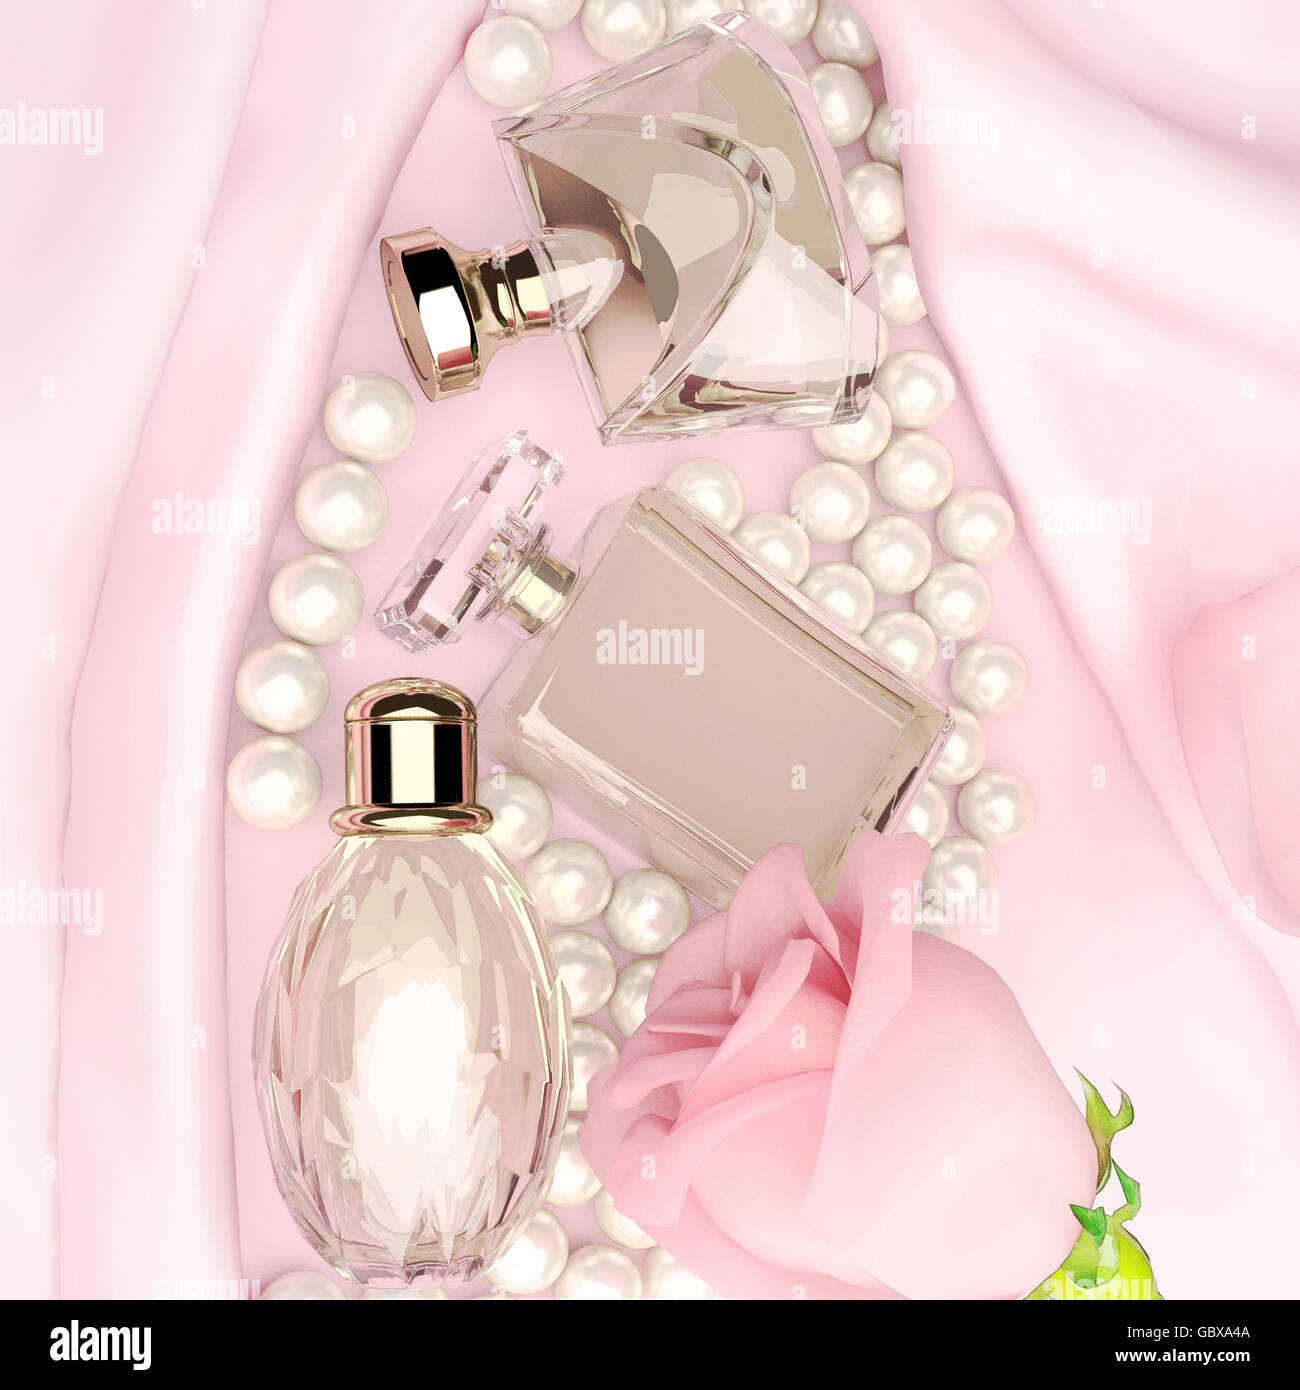 Perfume Bottles And Flower Rose Petals And Pearls On Pink Silk